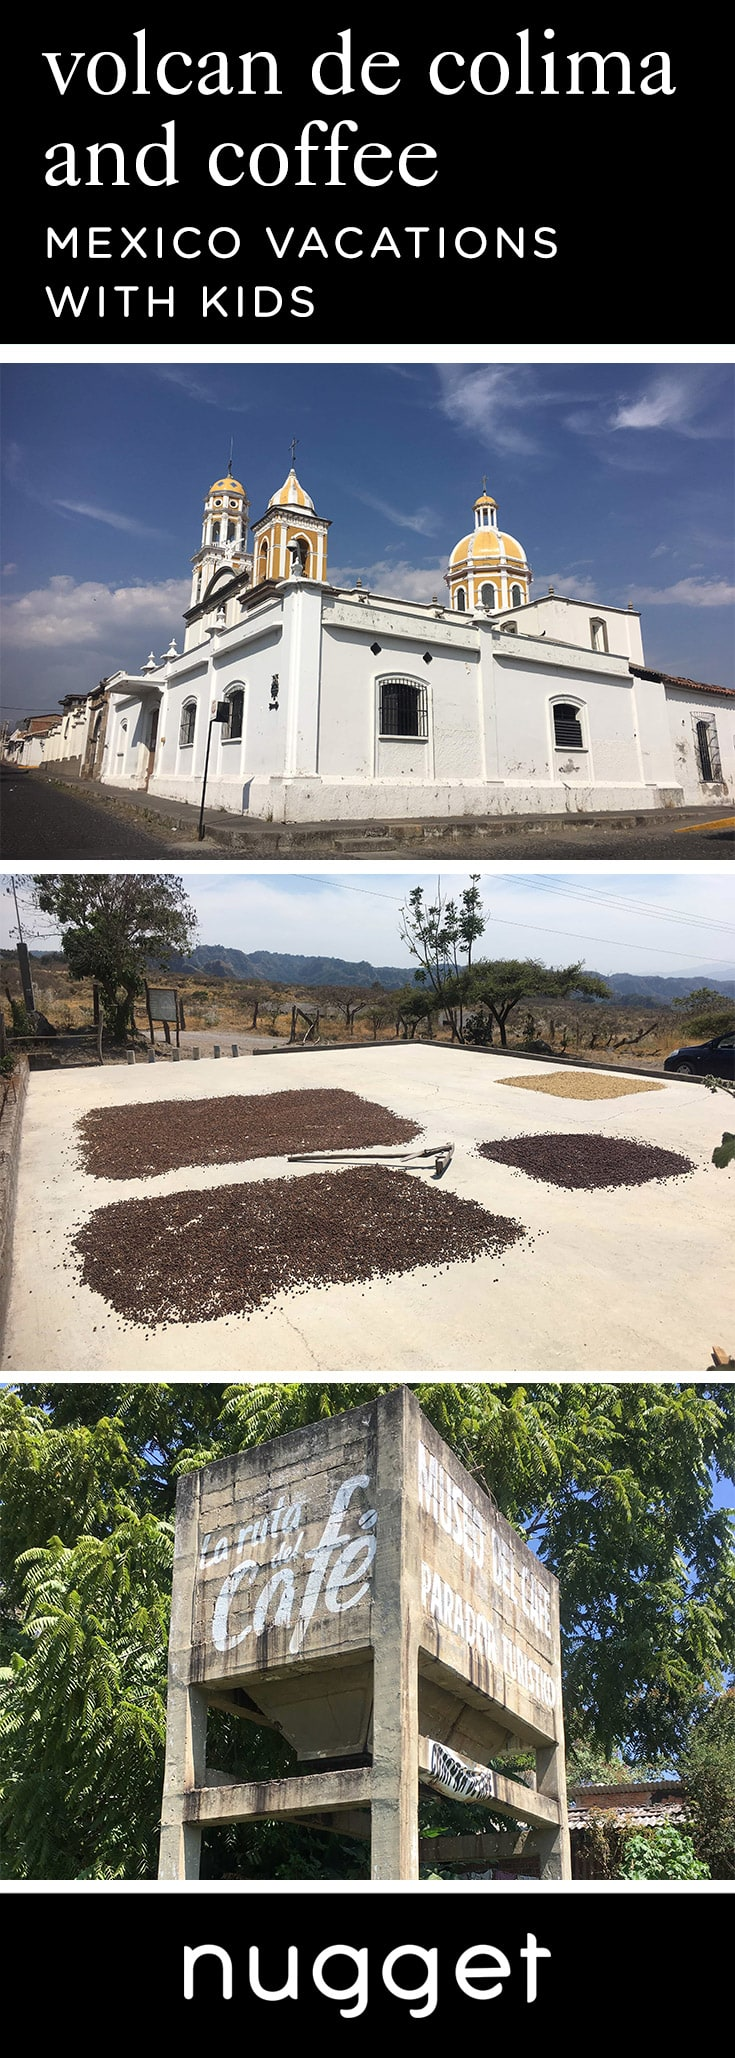 Historic Villages and Coffee below Volcan de Colima